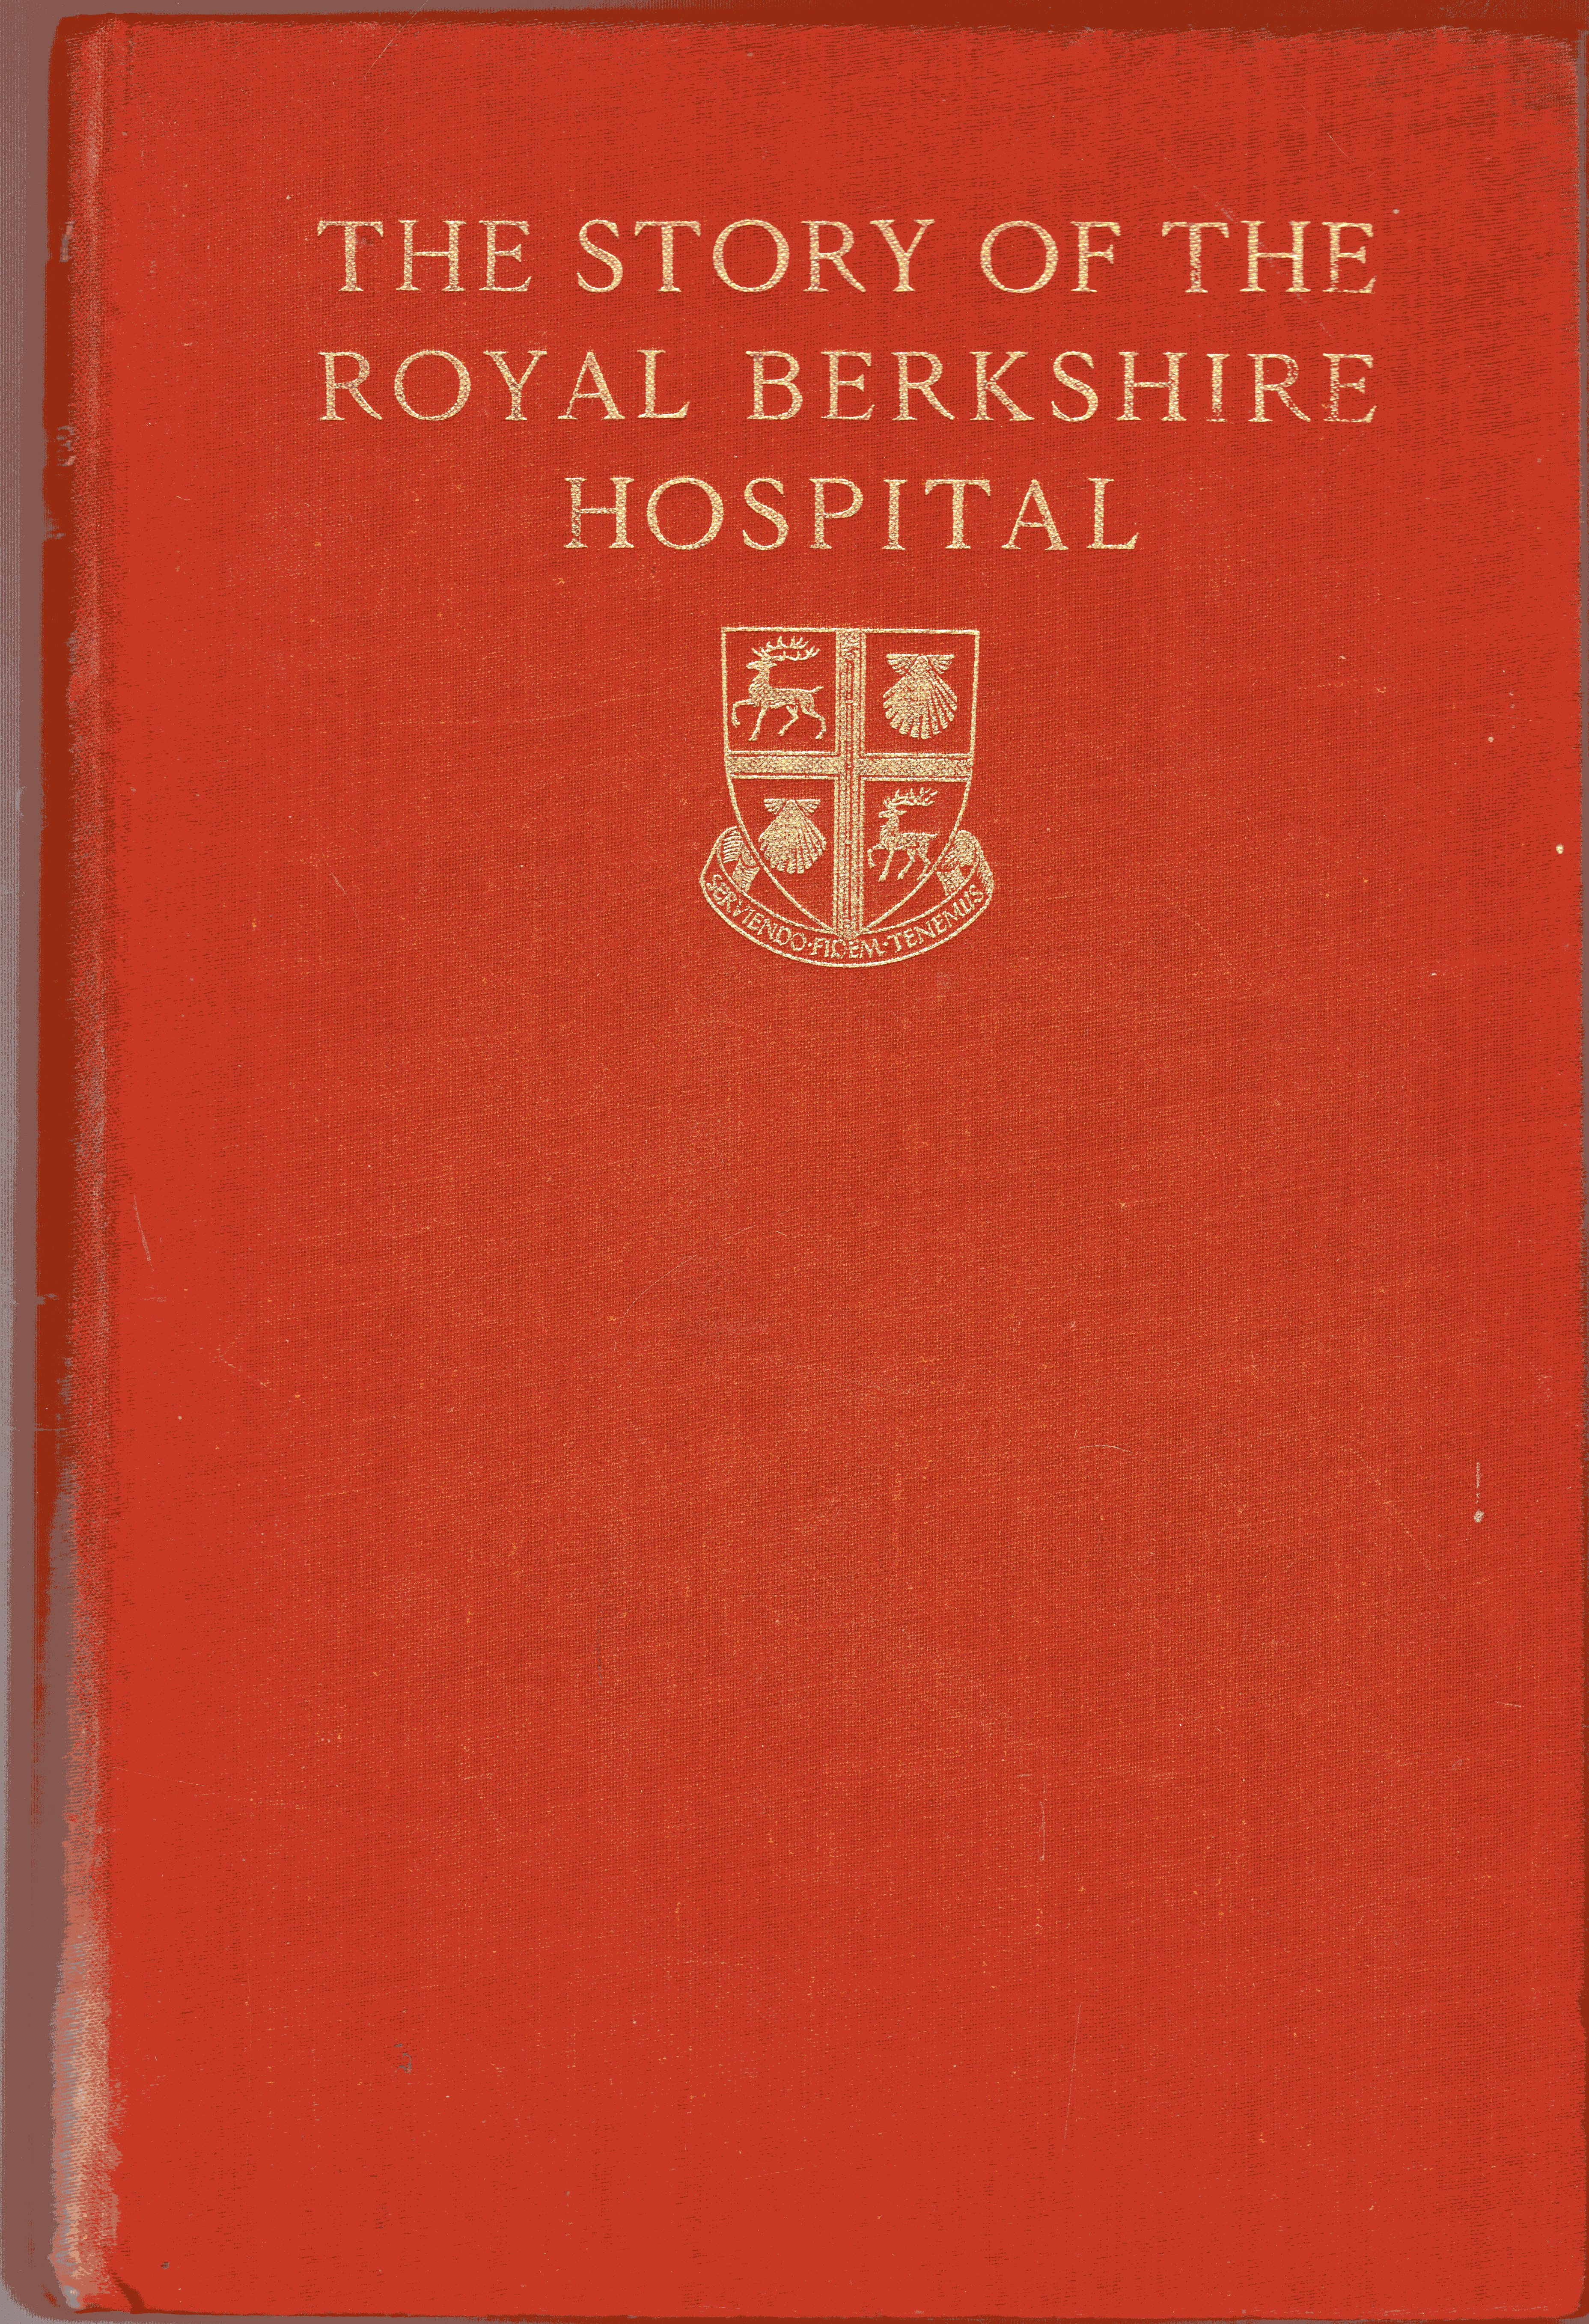 Image for The Story of the Royal Berkshire Hospital 1837-1937